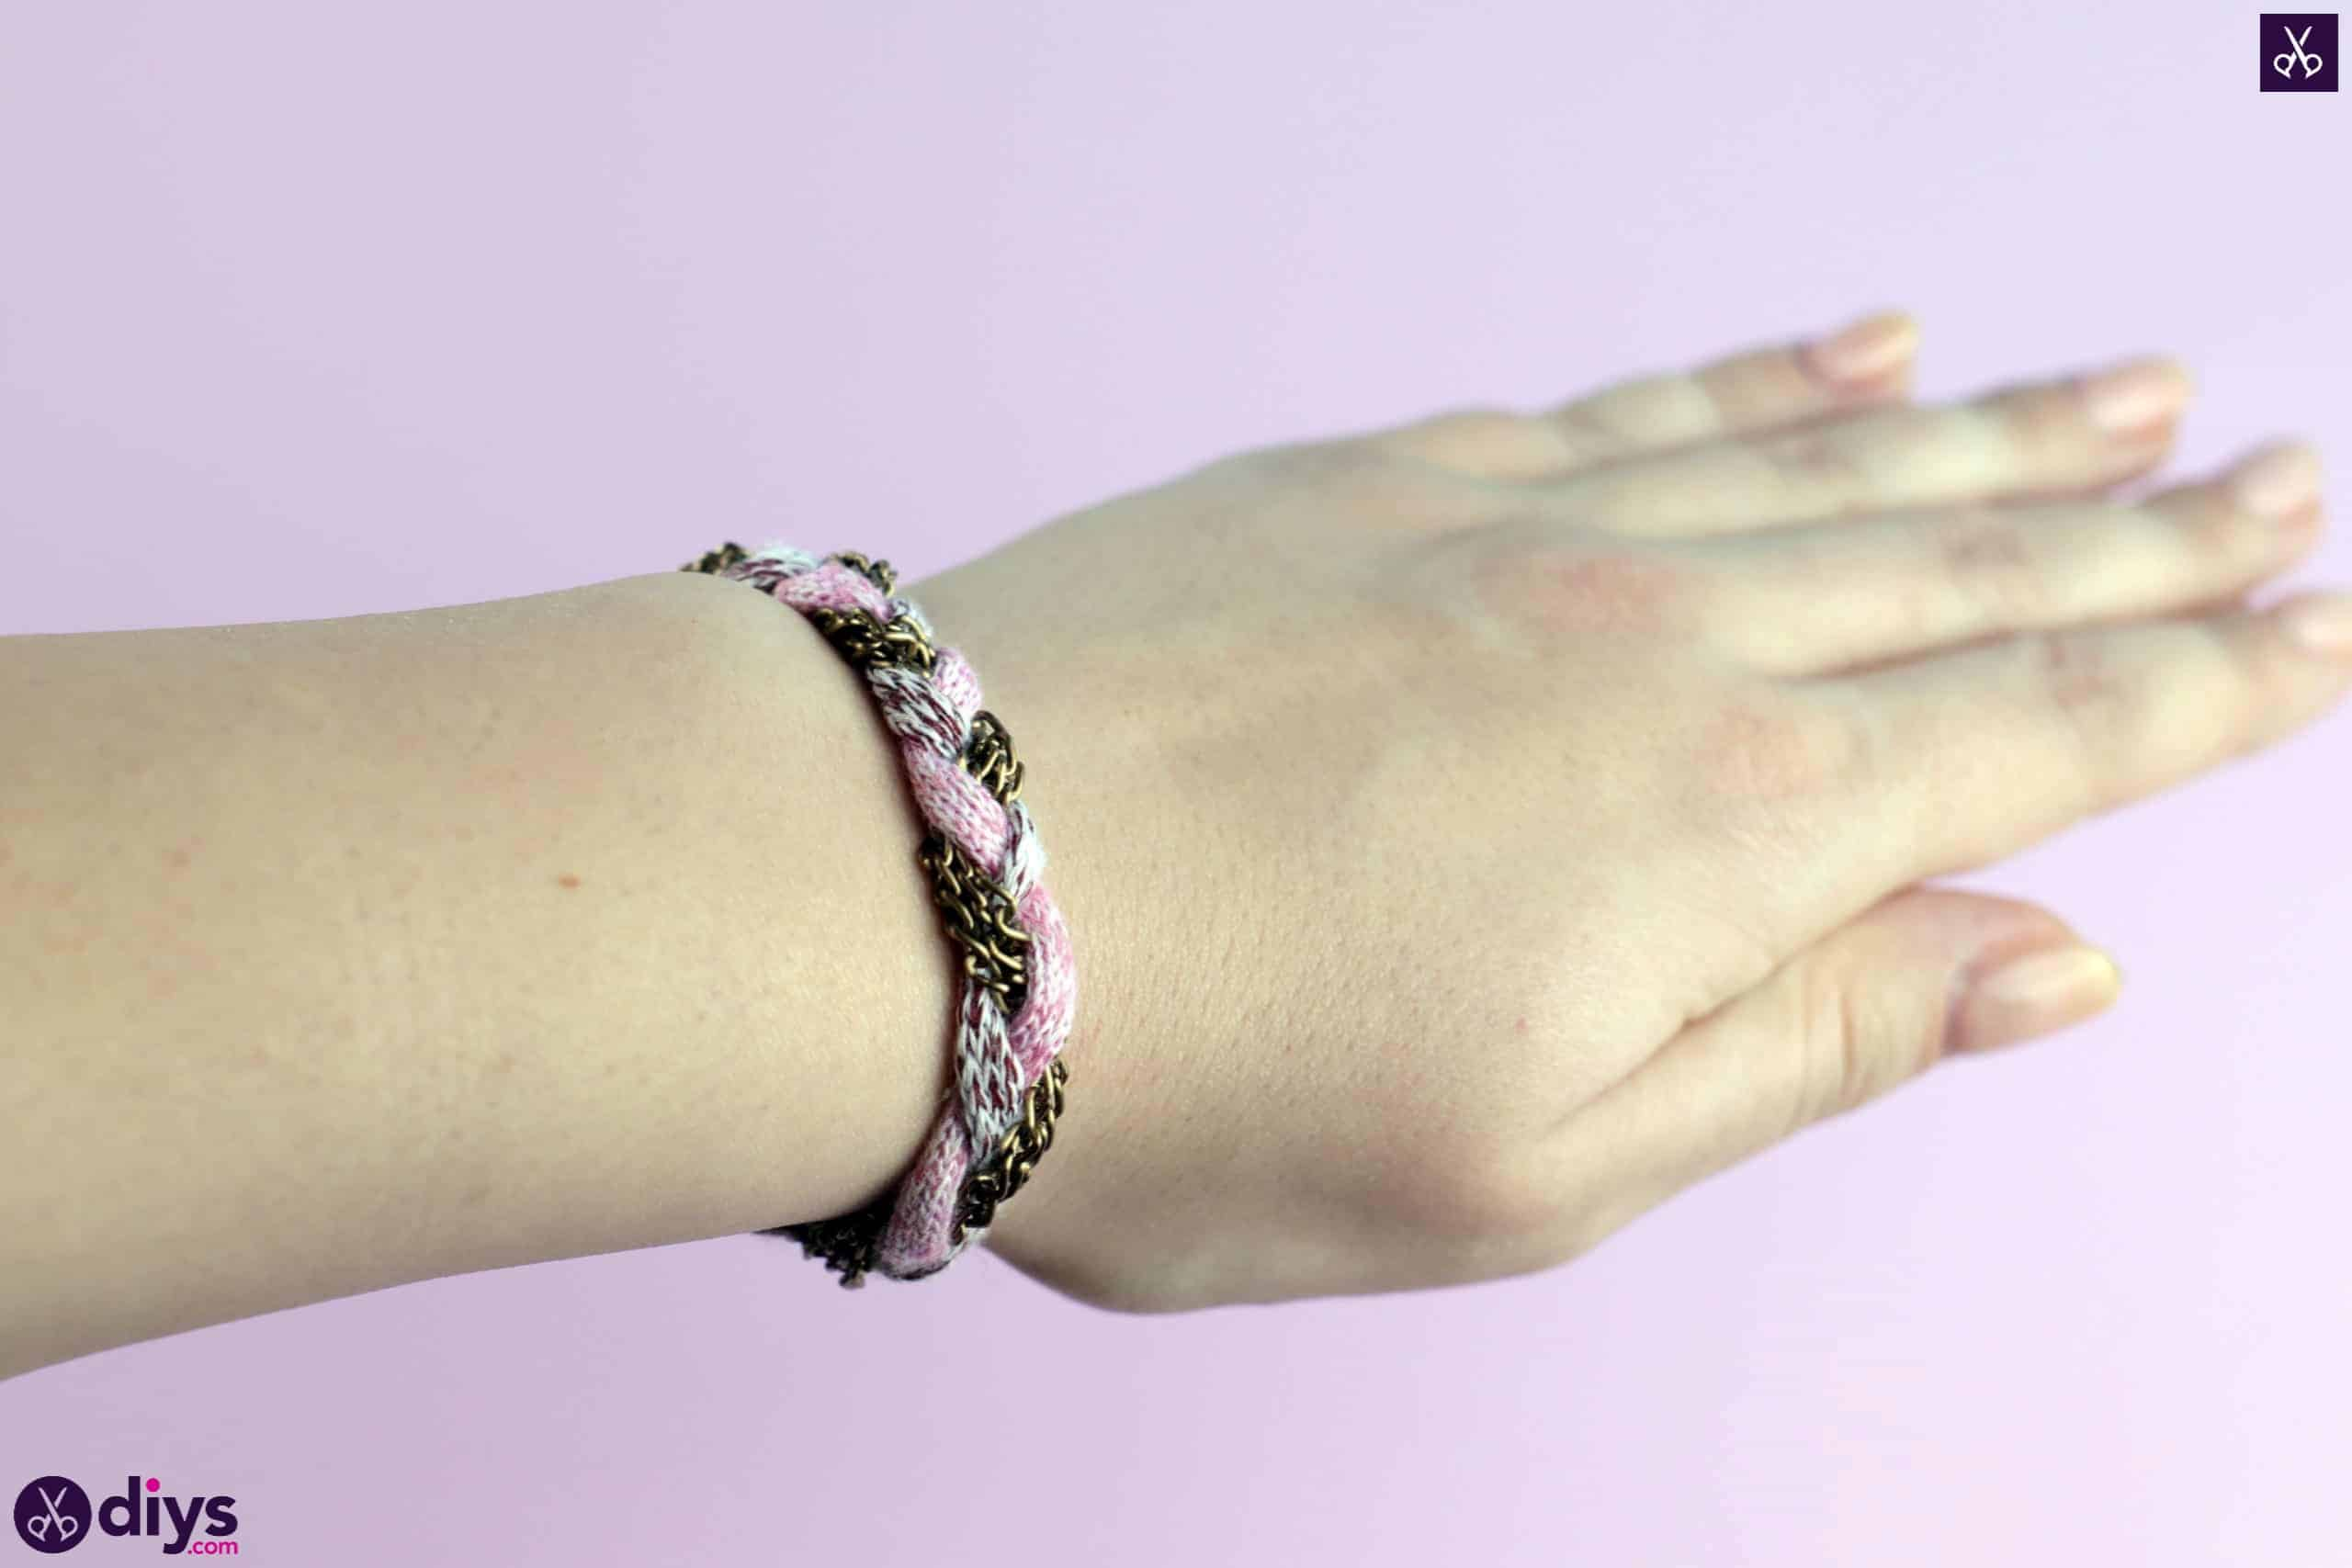 Yarn and chain bracelet crafting